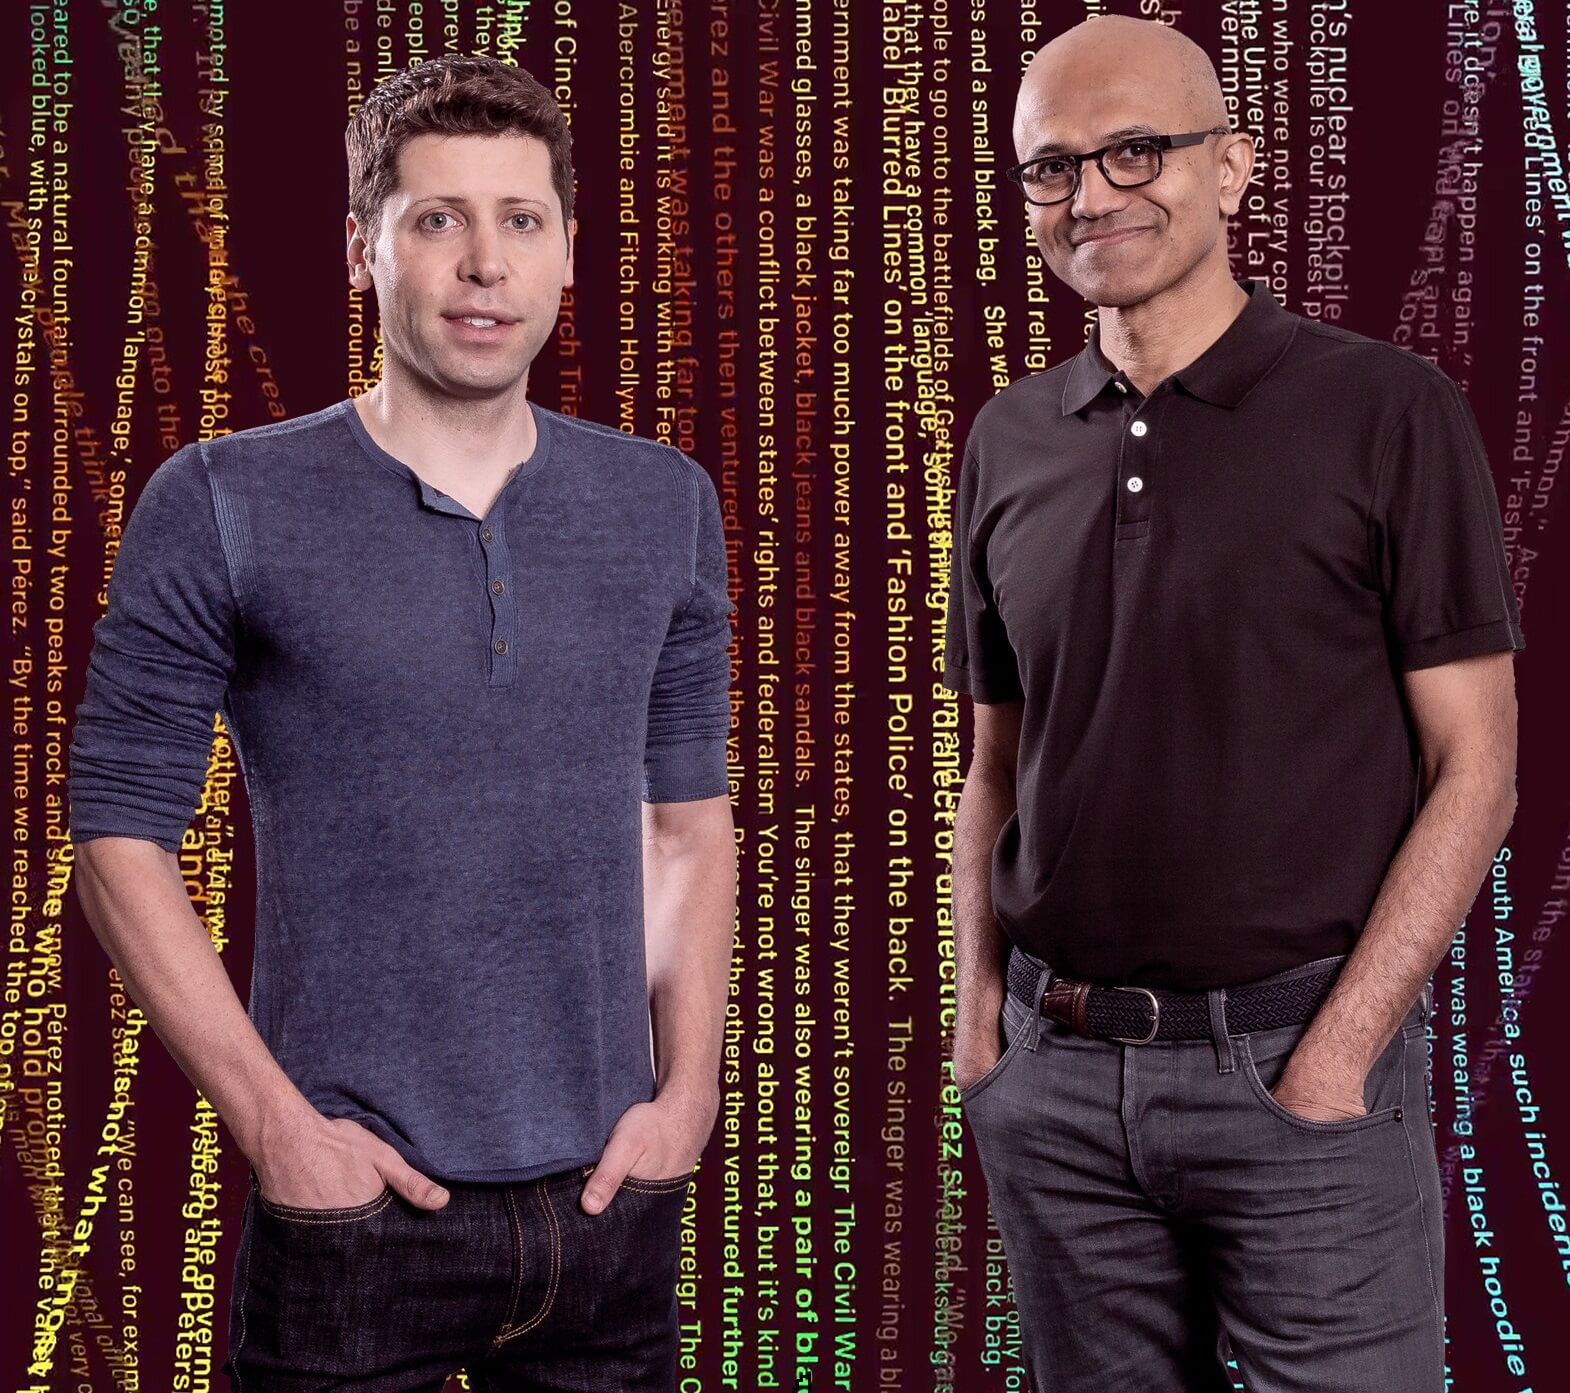 Microsoft will pour $1B into OpenAI as part of a multiyear partnership